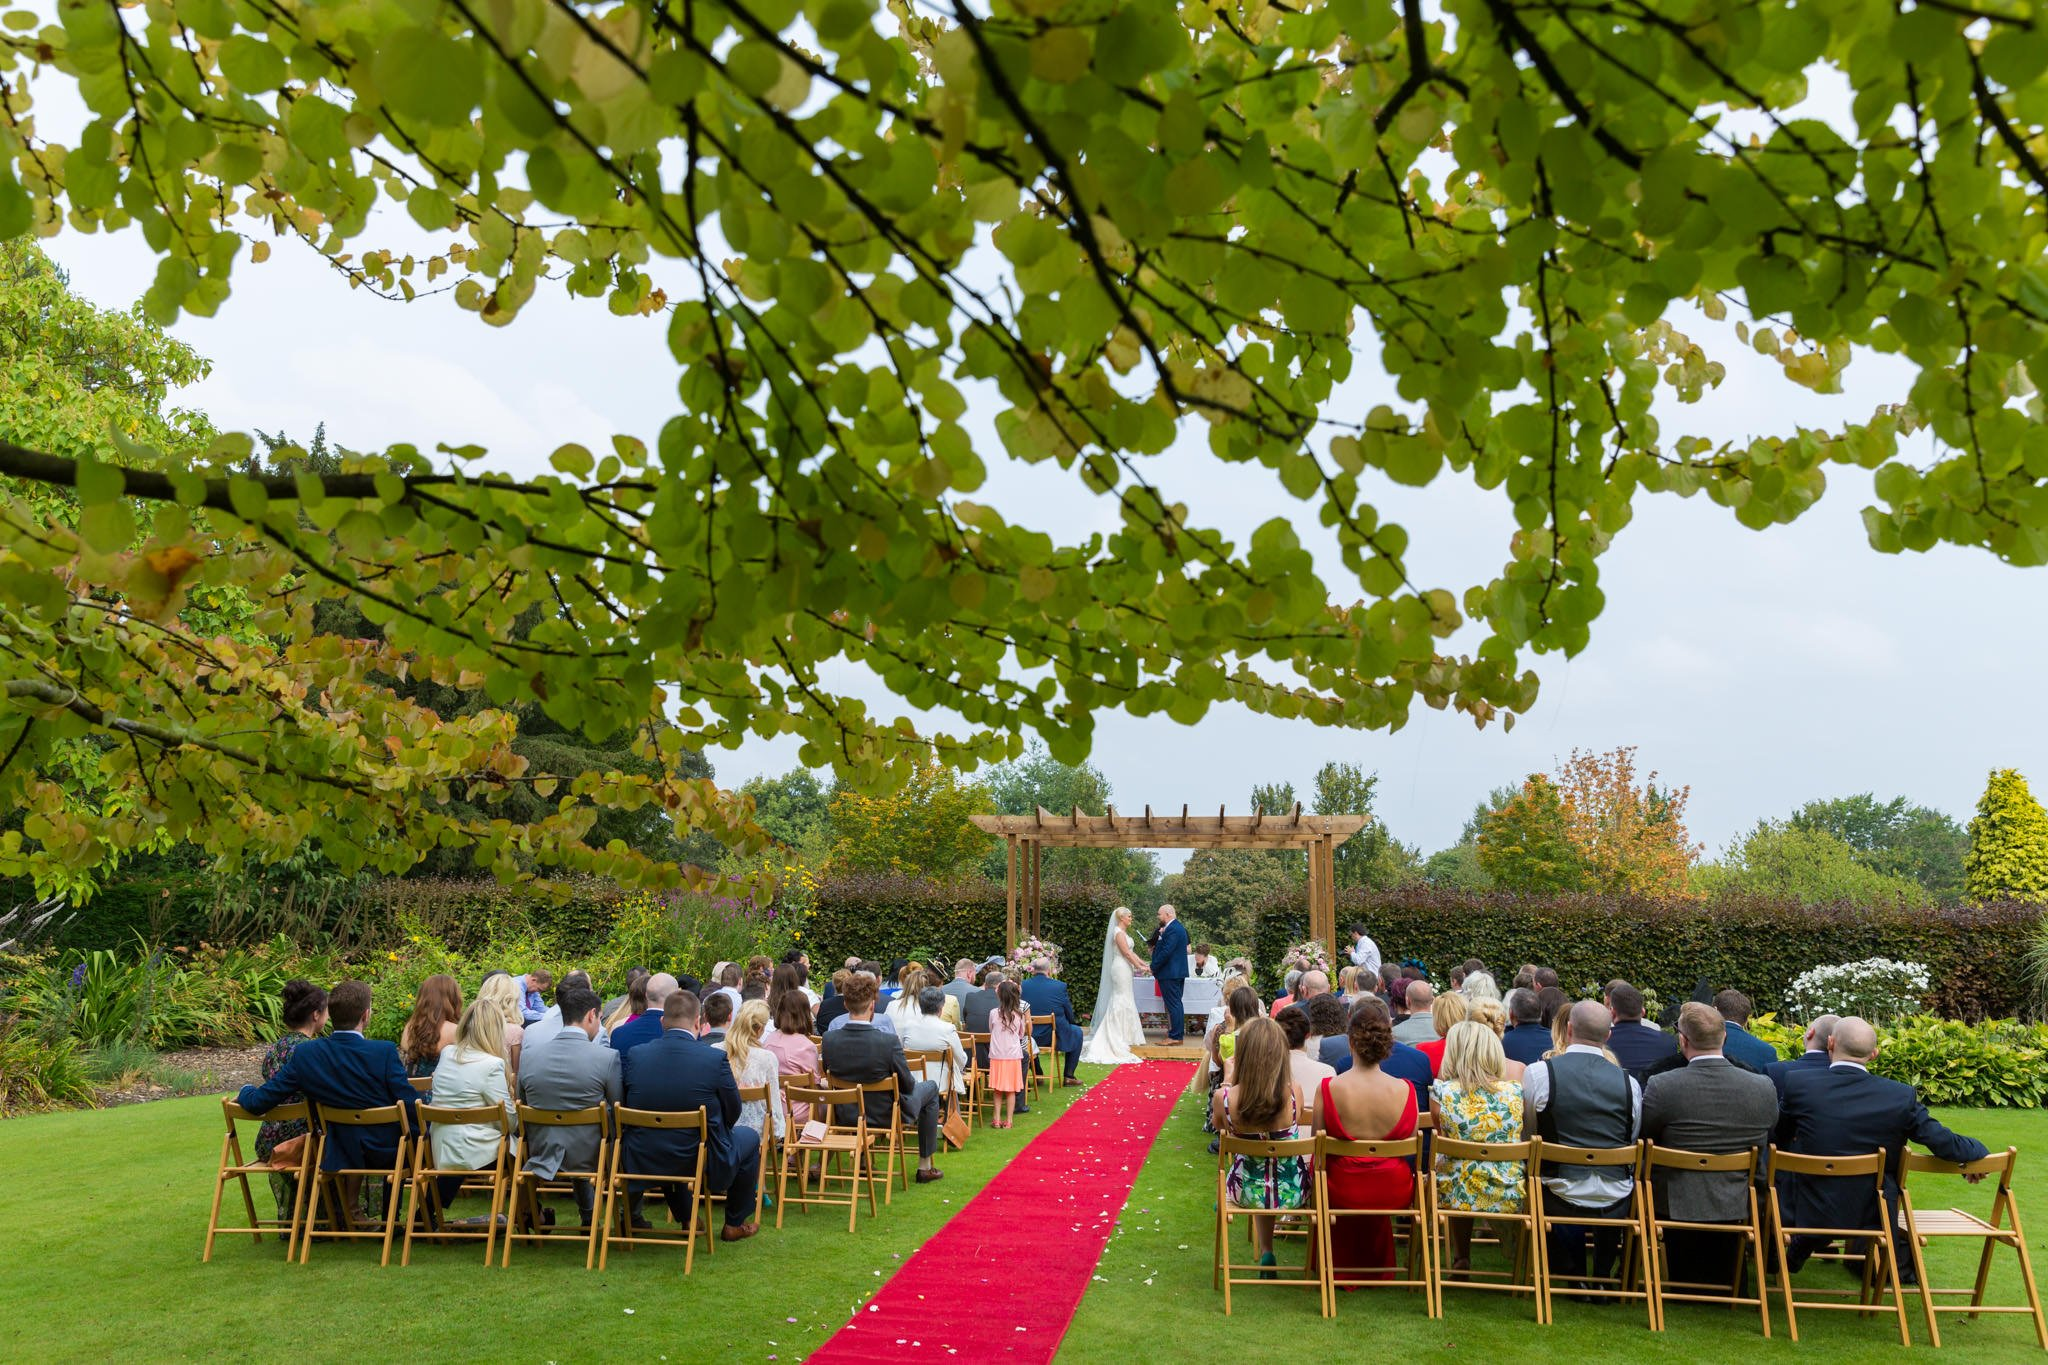 Tipi-Wedding-Photography-Cheshire-Photographer-20140913--10005